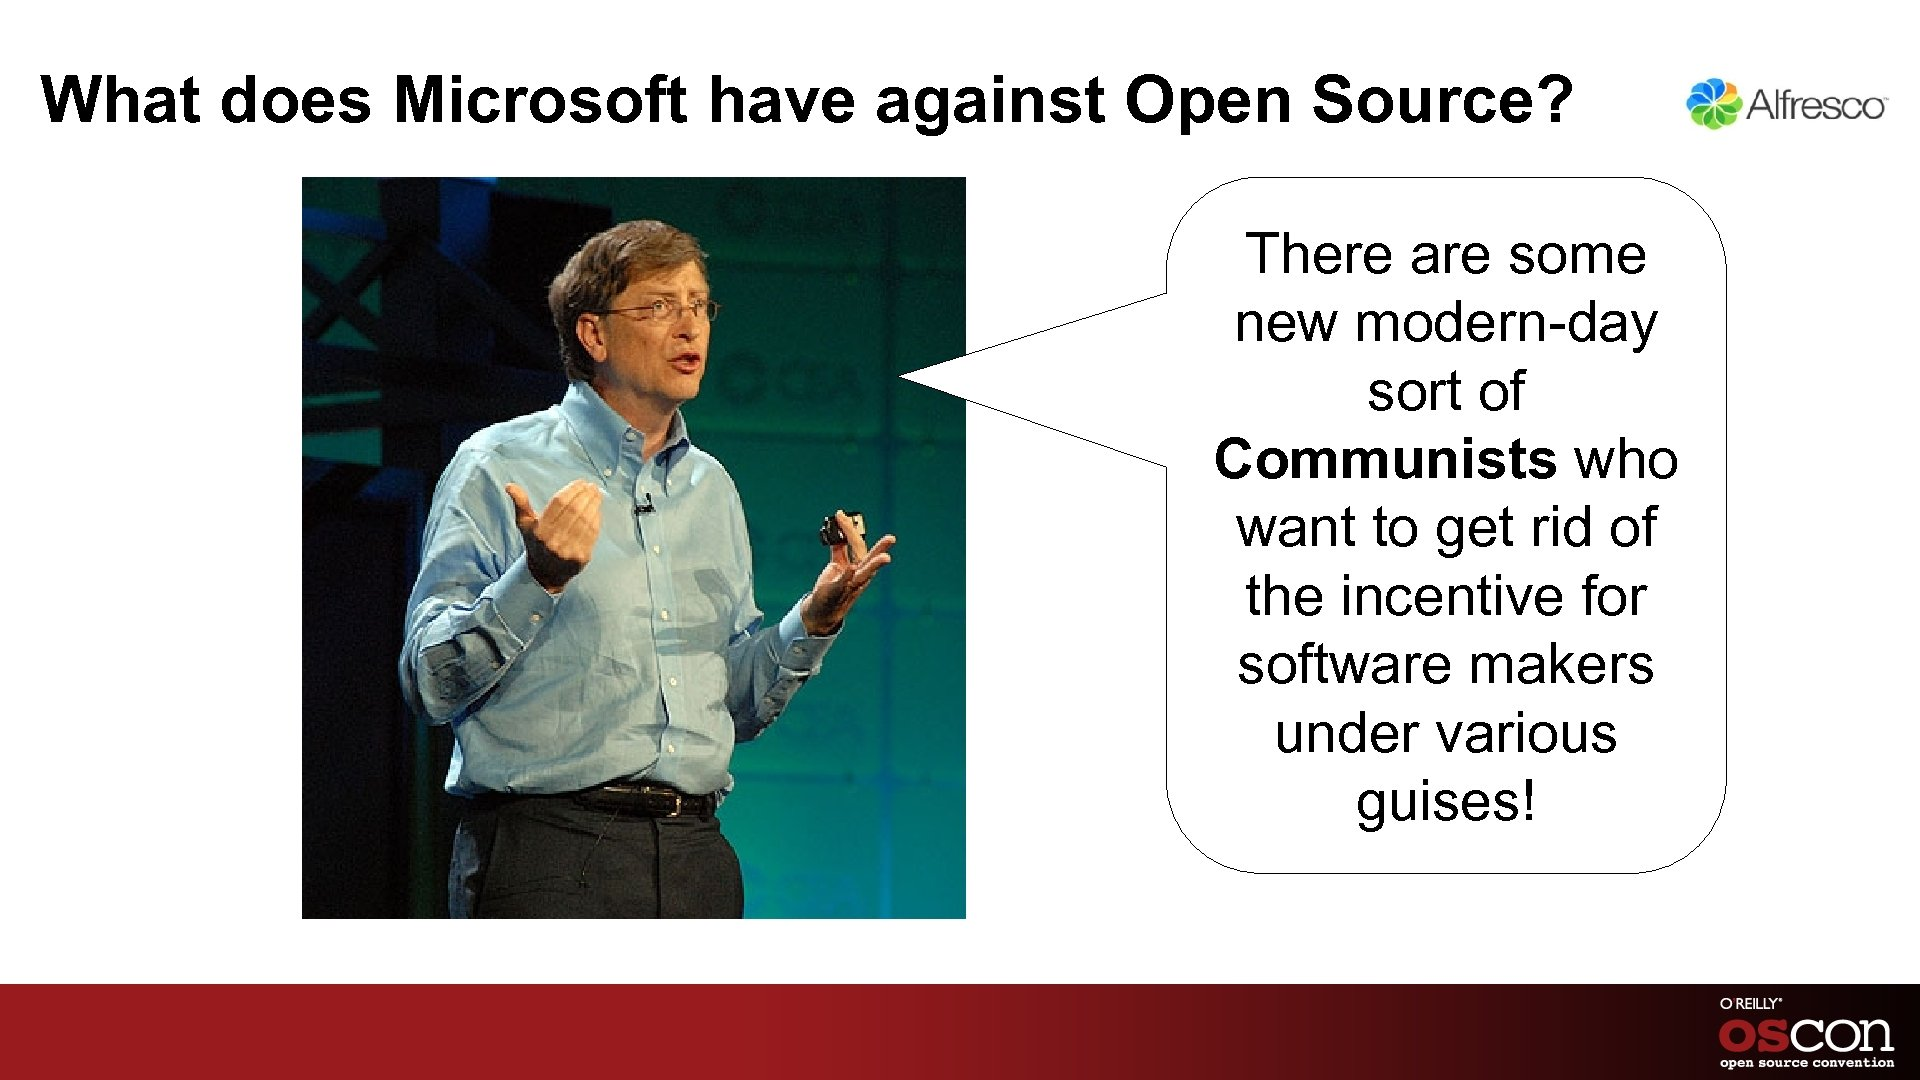 What does Microsoft have against Open Source? There are some new modern-day sort of